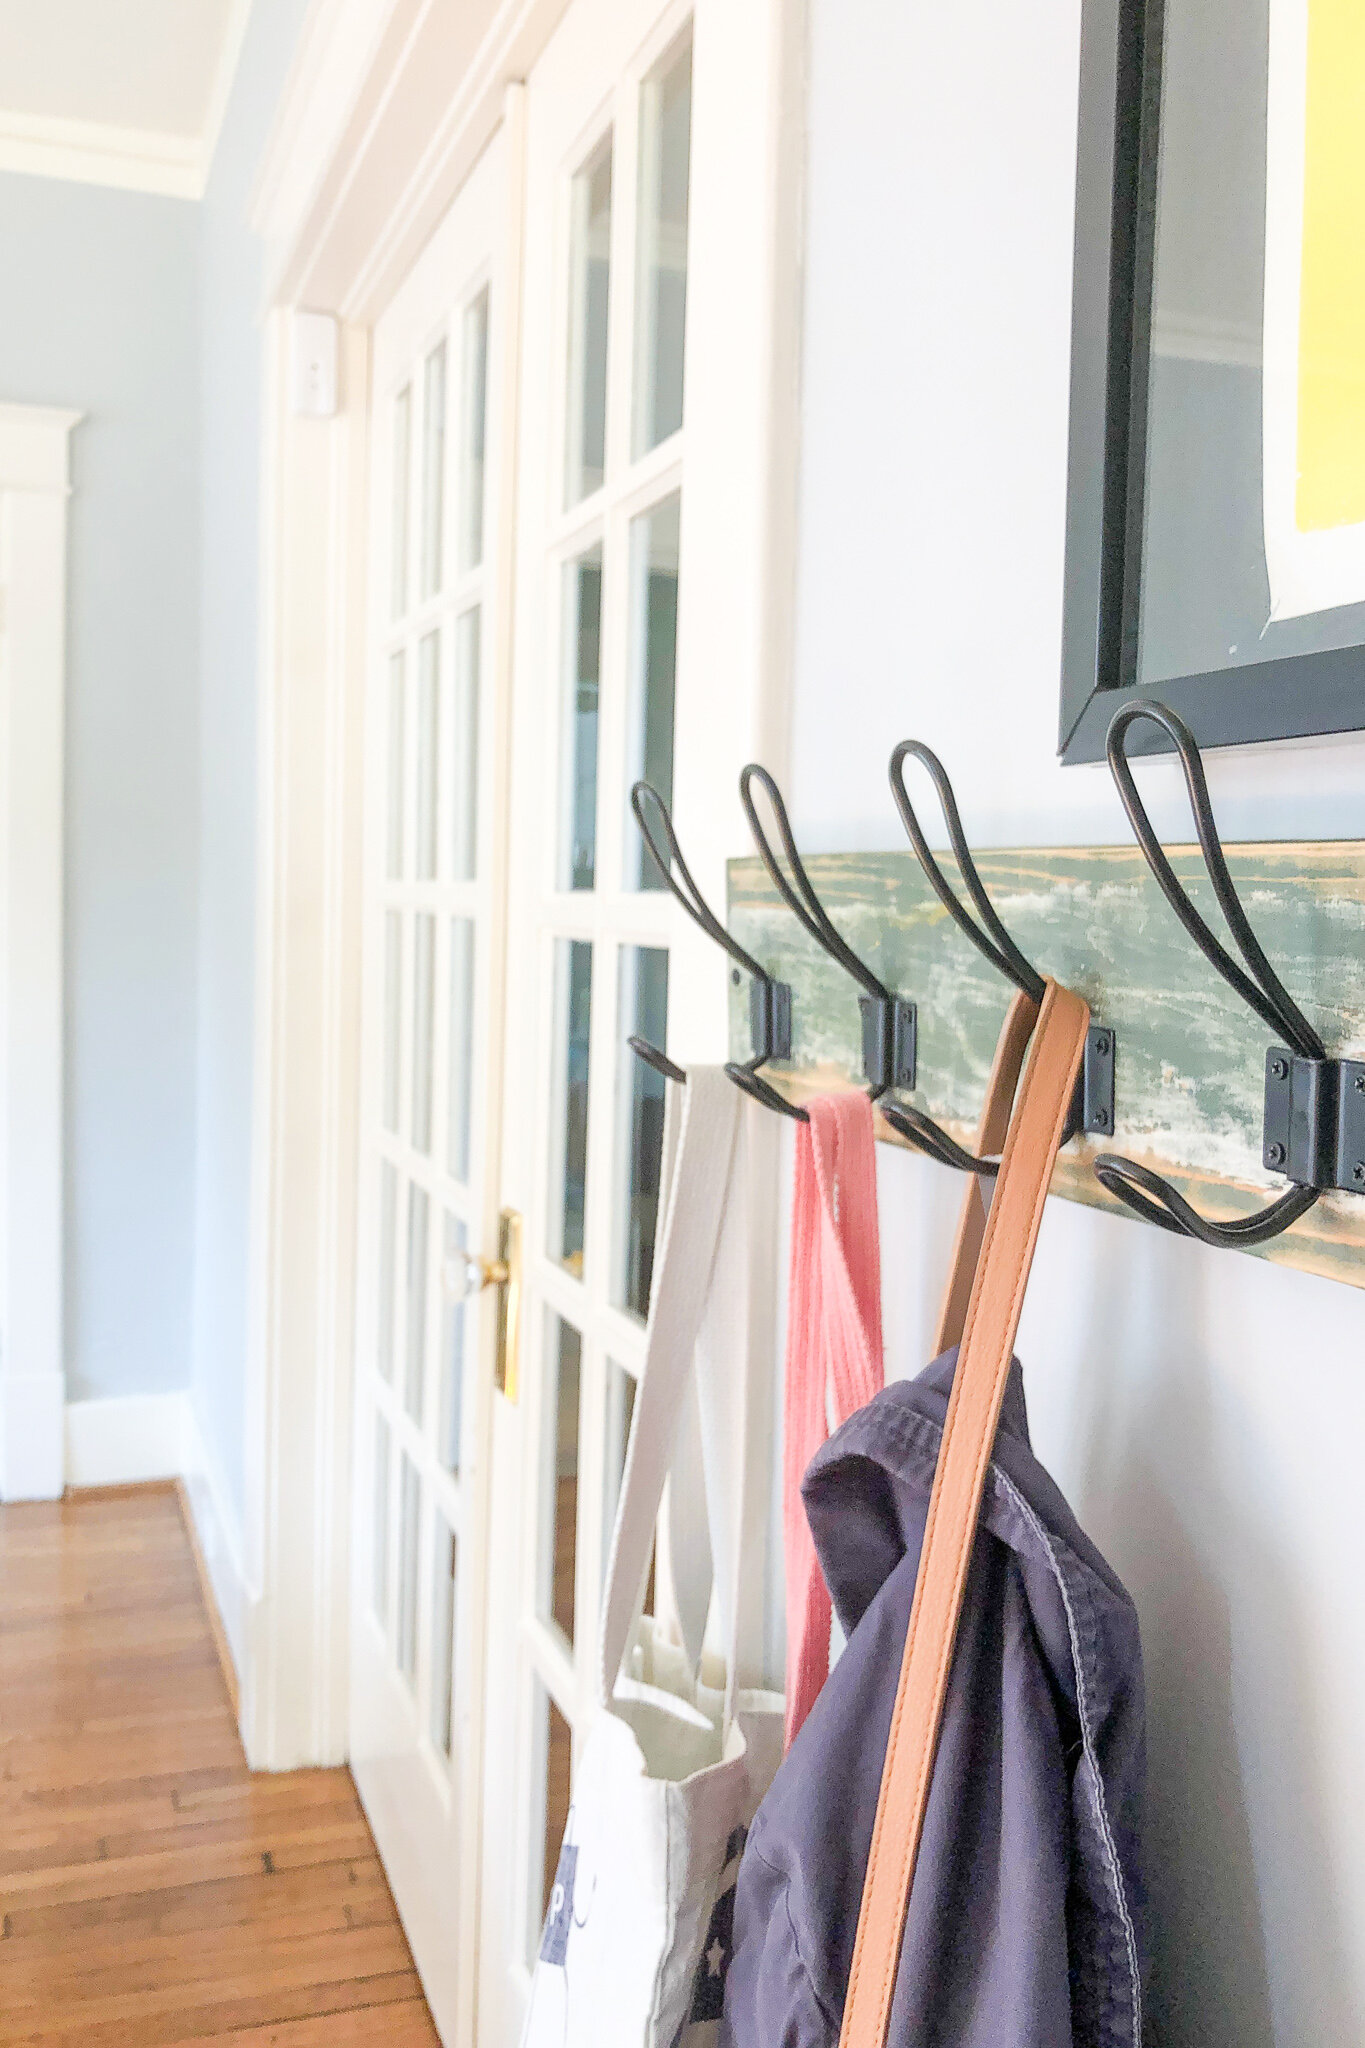 No space for storing coats? Use your walls! Here's how I added a vintage industrial style hook system in my entryway for less than $20! #schoolhousestyle #nashvillelifestyle #modernmeetsvintage #modernfarmhouse #rusticdecor